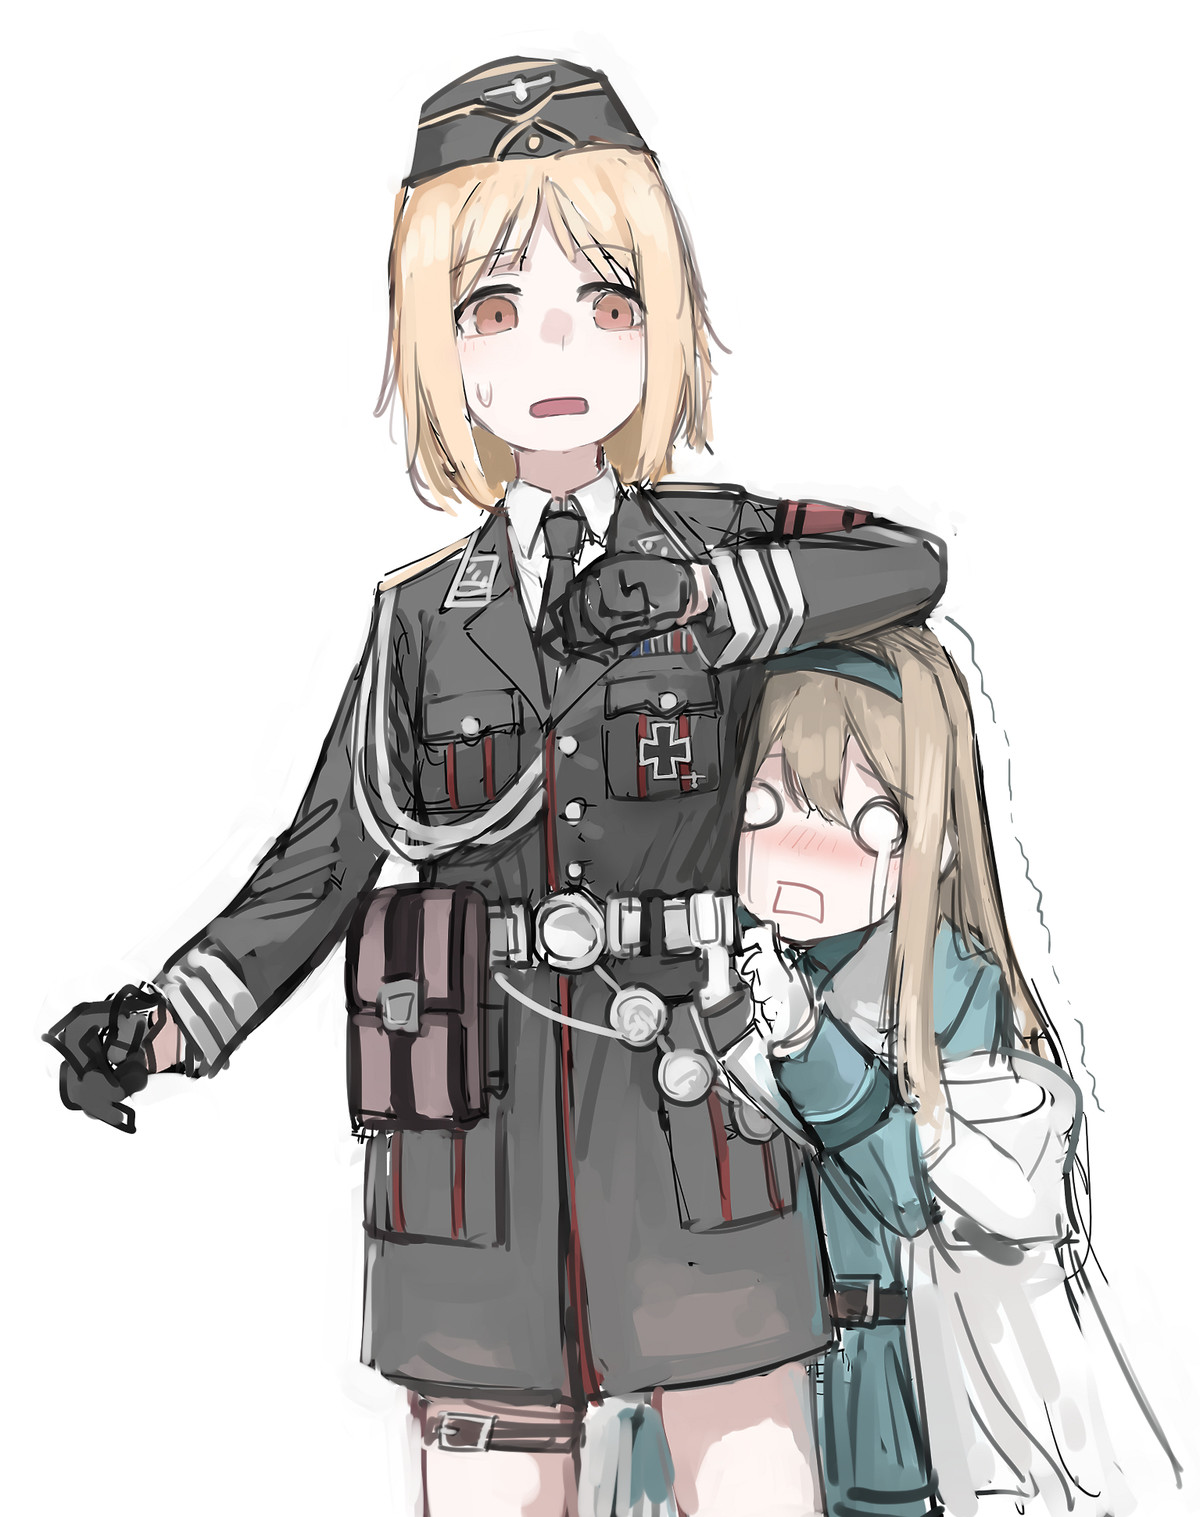 random tag, iron cross. join list: RandomTags (30 subs)Mention History join list:. Hmm, I just realized that people might start screeching at Nazi anime girls in the future. Welp, let's enjoy it while it's still quiet